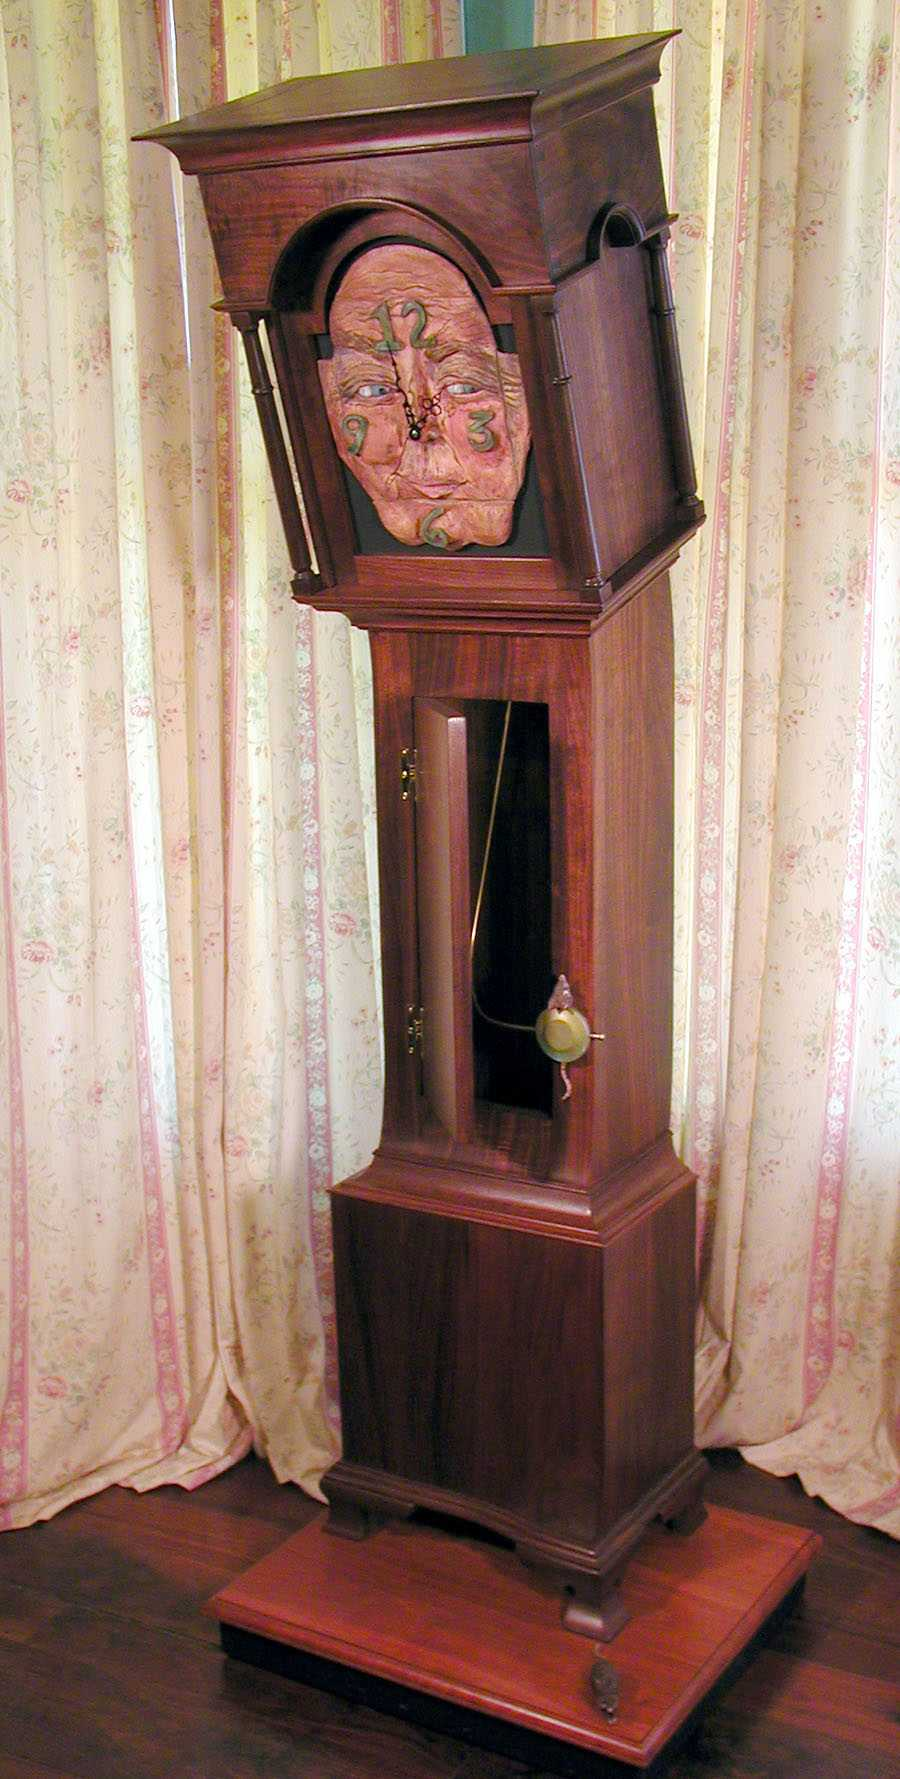 Hickory Dickory Clock by Jake Cress Furniture Maker at CustomMade.com